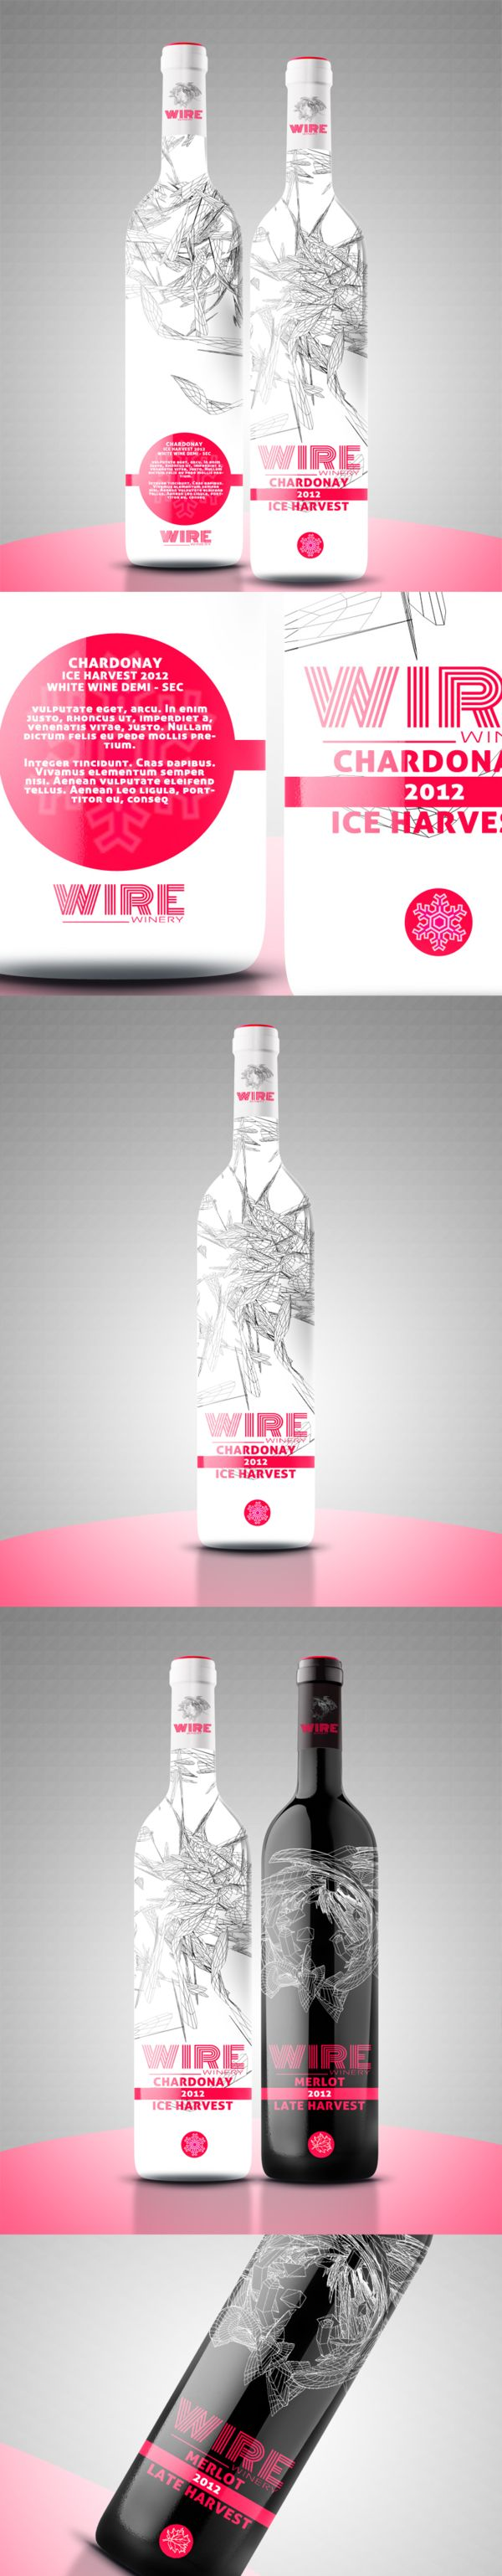 WINE BOTTLE DESIGN - BLACK & WHITE EDITION by Provoco , via Behance. love this #wine #packaging PD